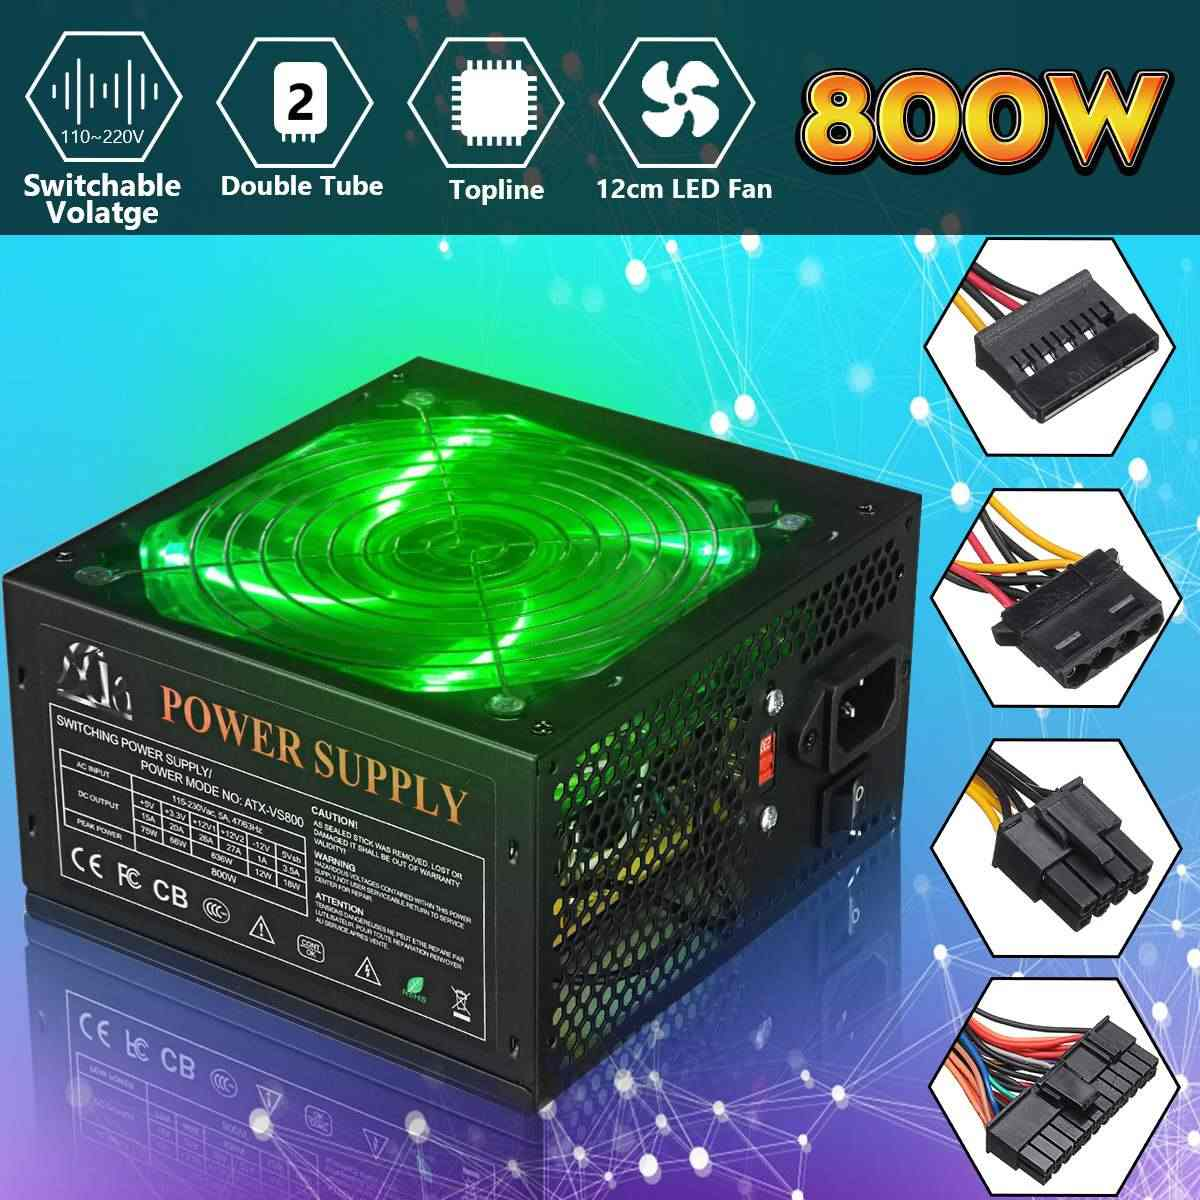 110 ~ 220V 800W Pc Voeding 12 Cm Led Stille Ventilator Met Intelligente Temperatuurregeling Intel Amd atx 12V Voor Desktop Computer